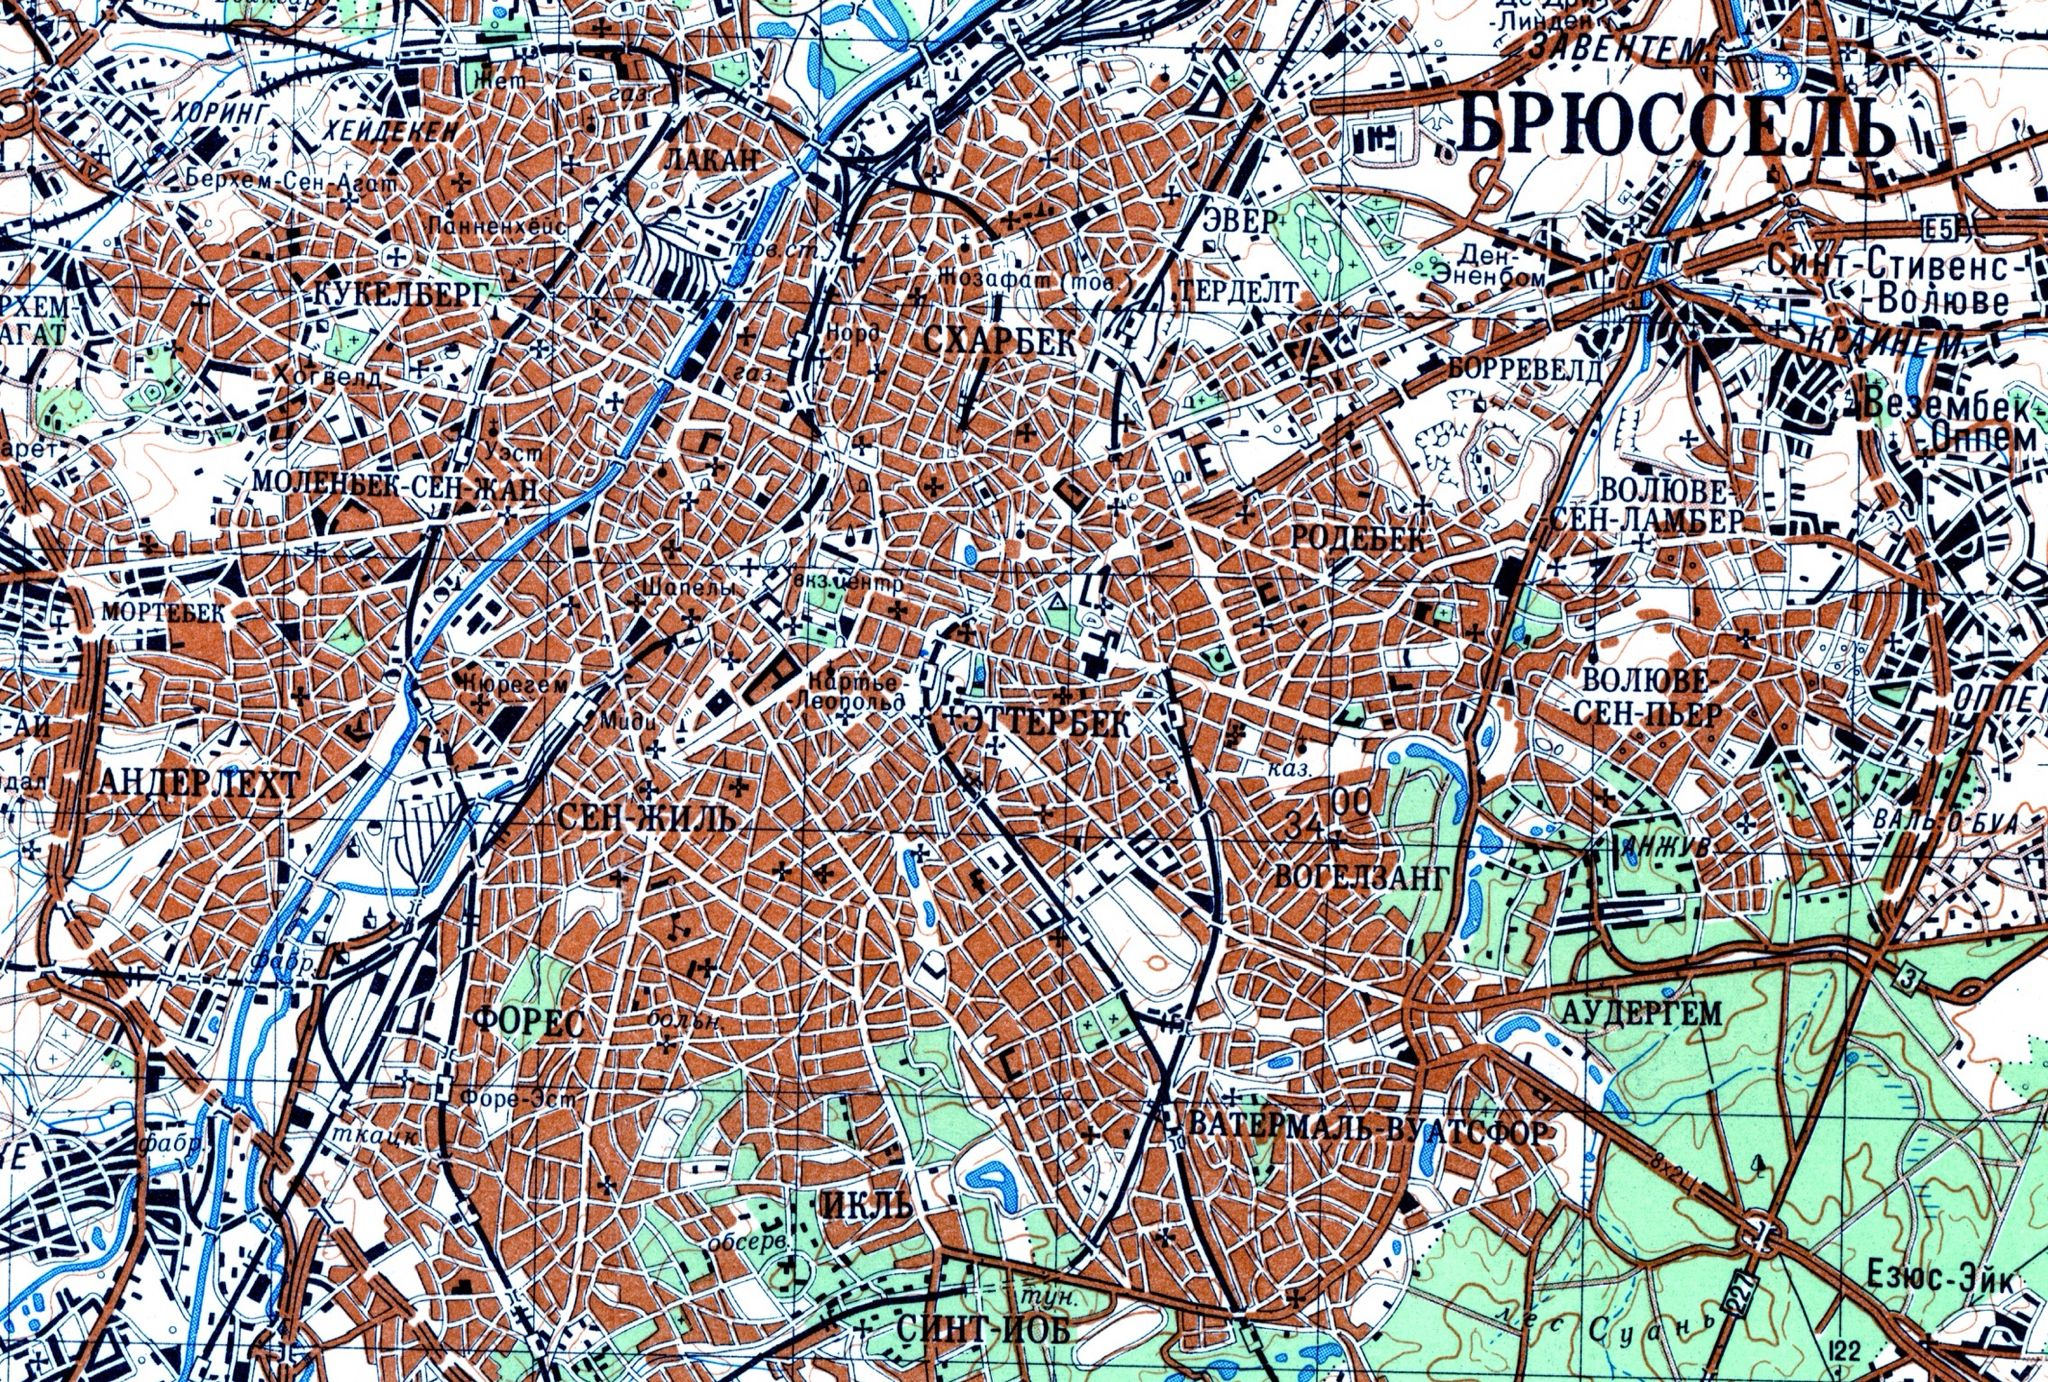 Brussel Bruxelles map USSRURSS 19761978 Brussels a large and